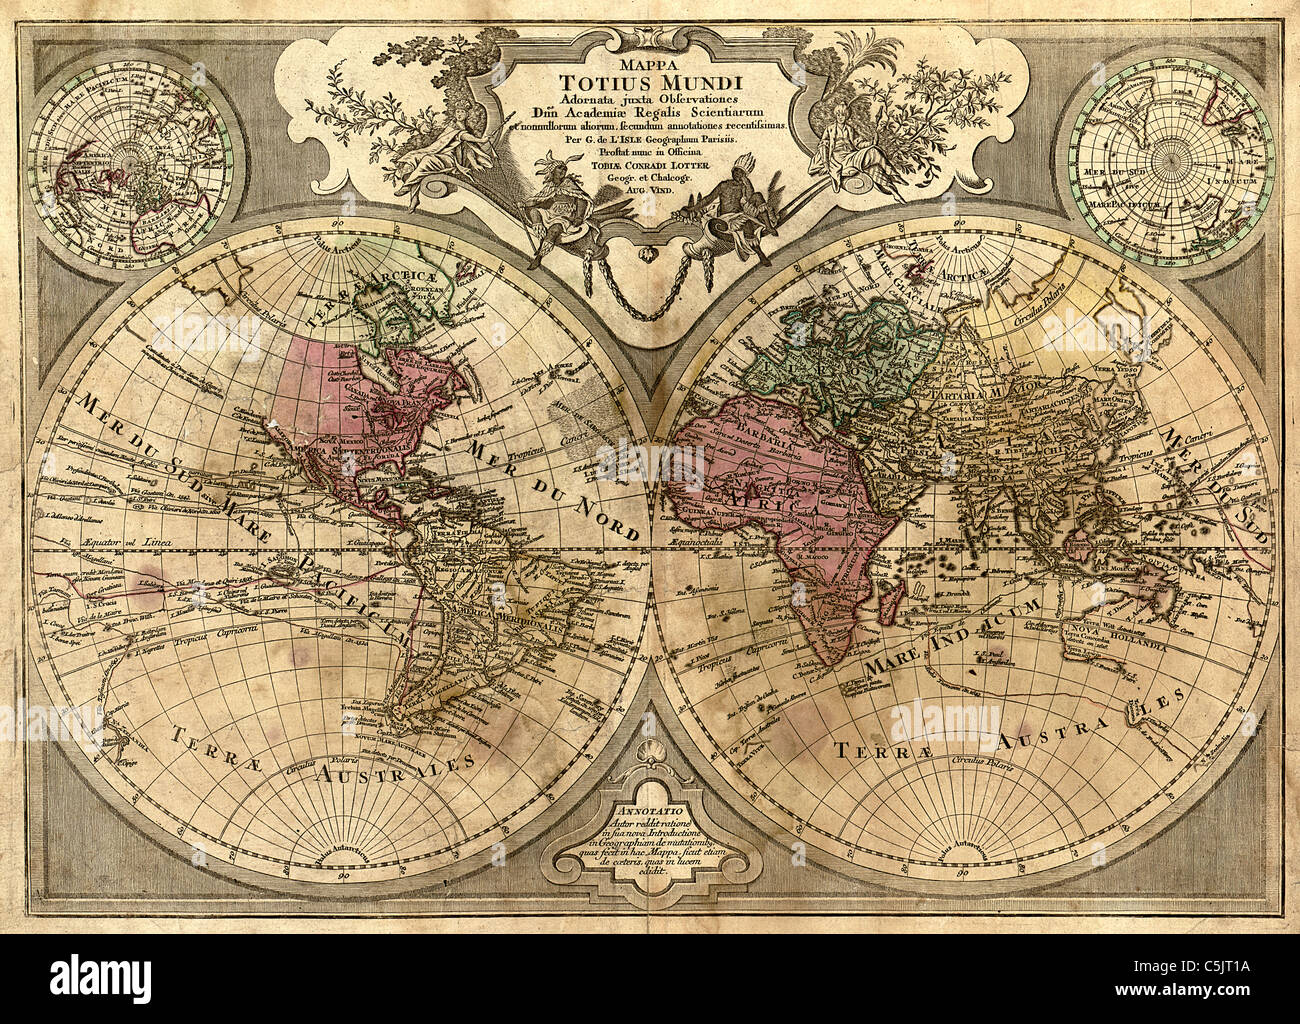 Mappa totius mundi - Antique World Map by Guillaume de L'Isle, 1775 - Stock Image